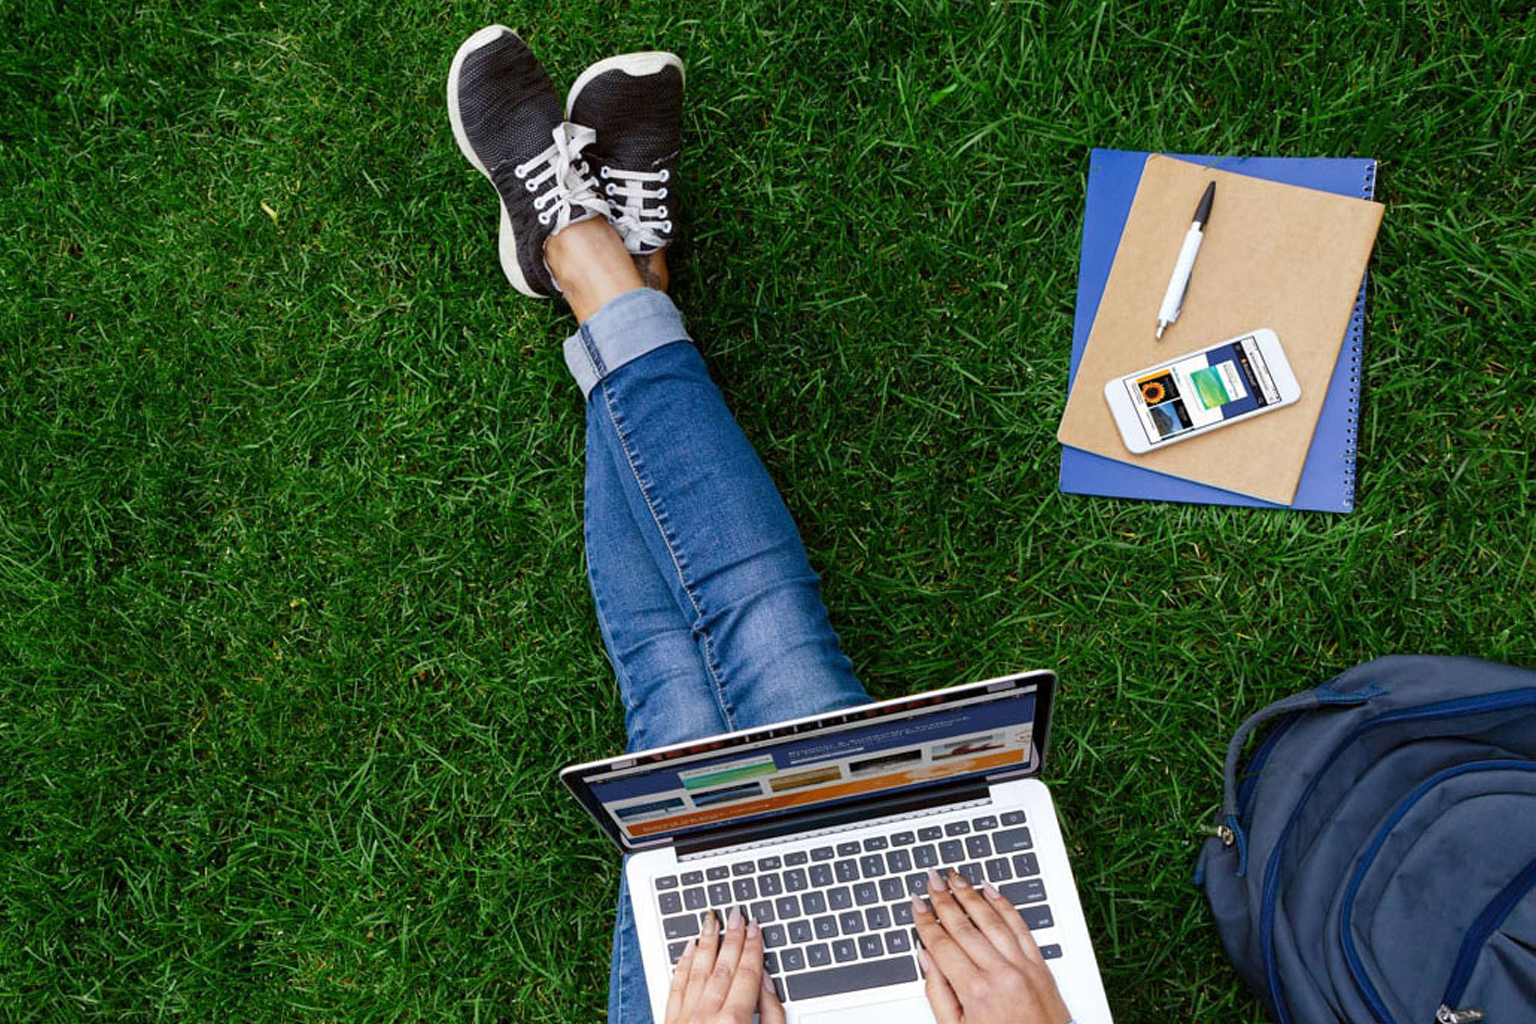 Student sitting on grass on laptop with backpack, phone, notebooks, and pen nearby